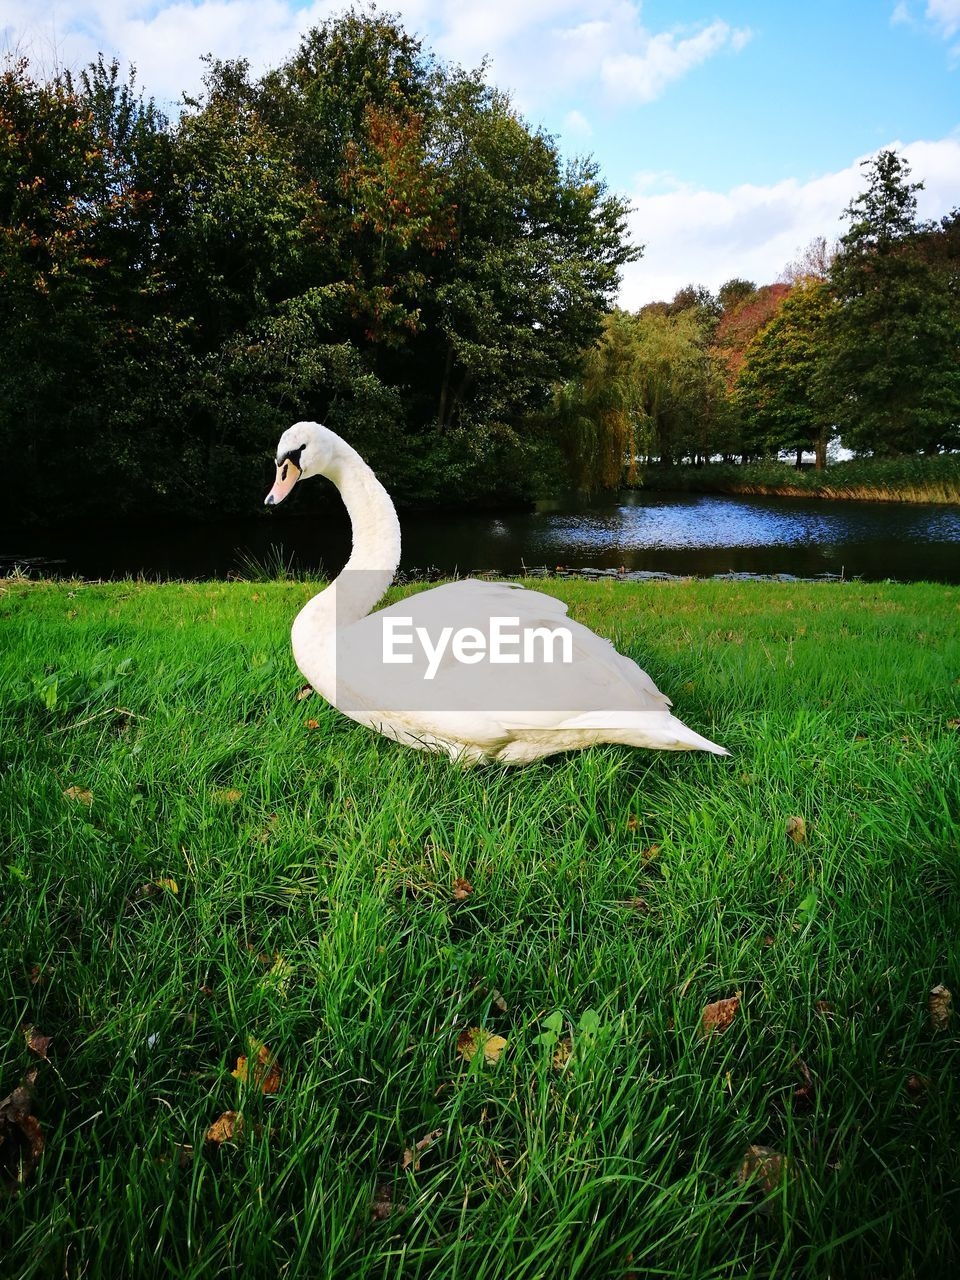 grass, animals in the wild, swan, animal themes, one animal, bird, nature, growth, lake, tree, day, green color, white color, outdoors, animal wildlife, no people, beauty in nature, sky, water